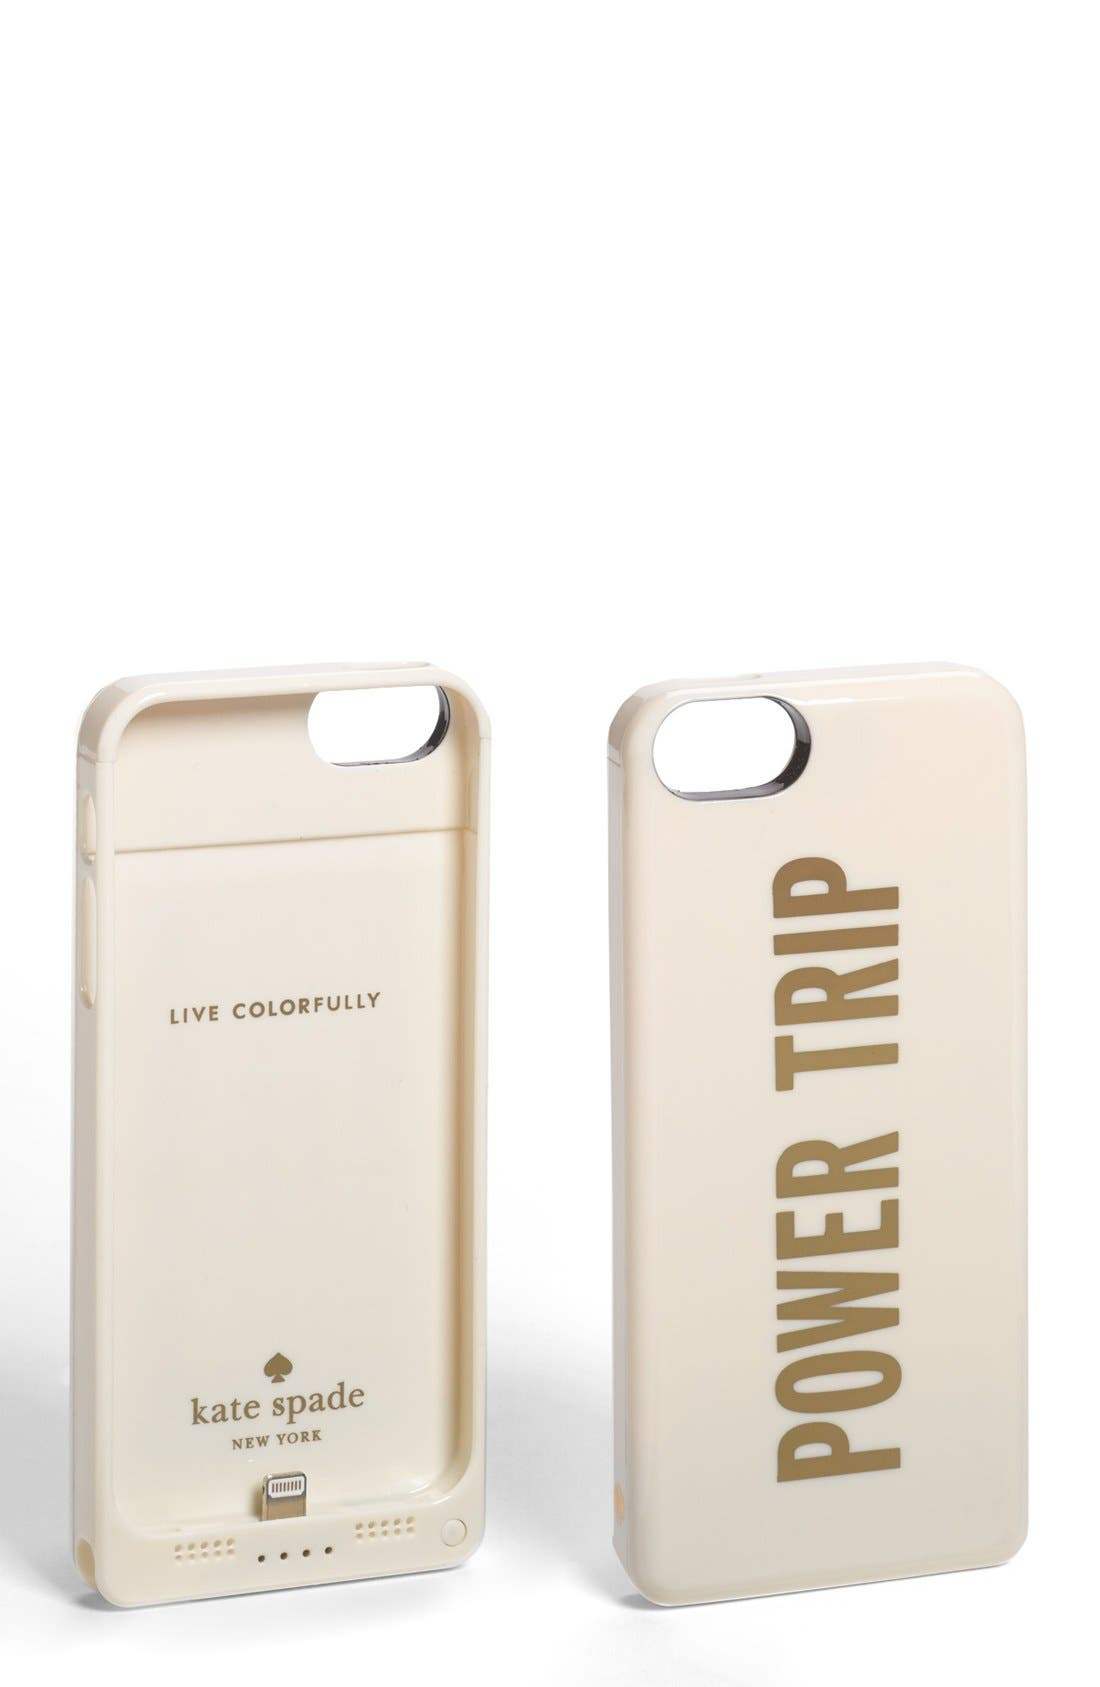 Main Image - kate spade new york 'power trip' iPhone 5 case & portable charger